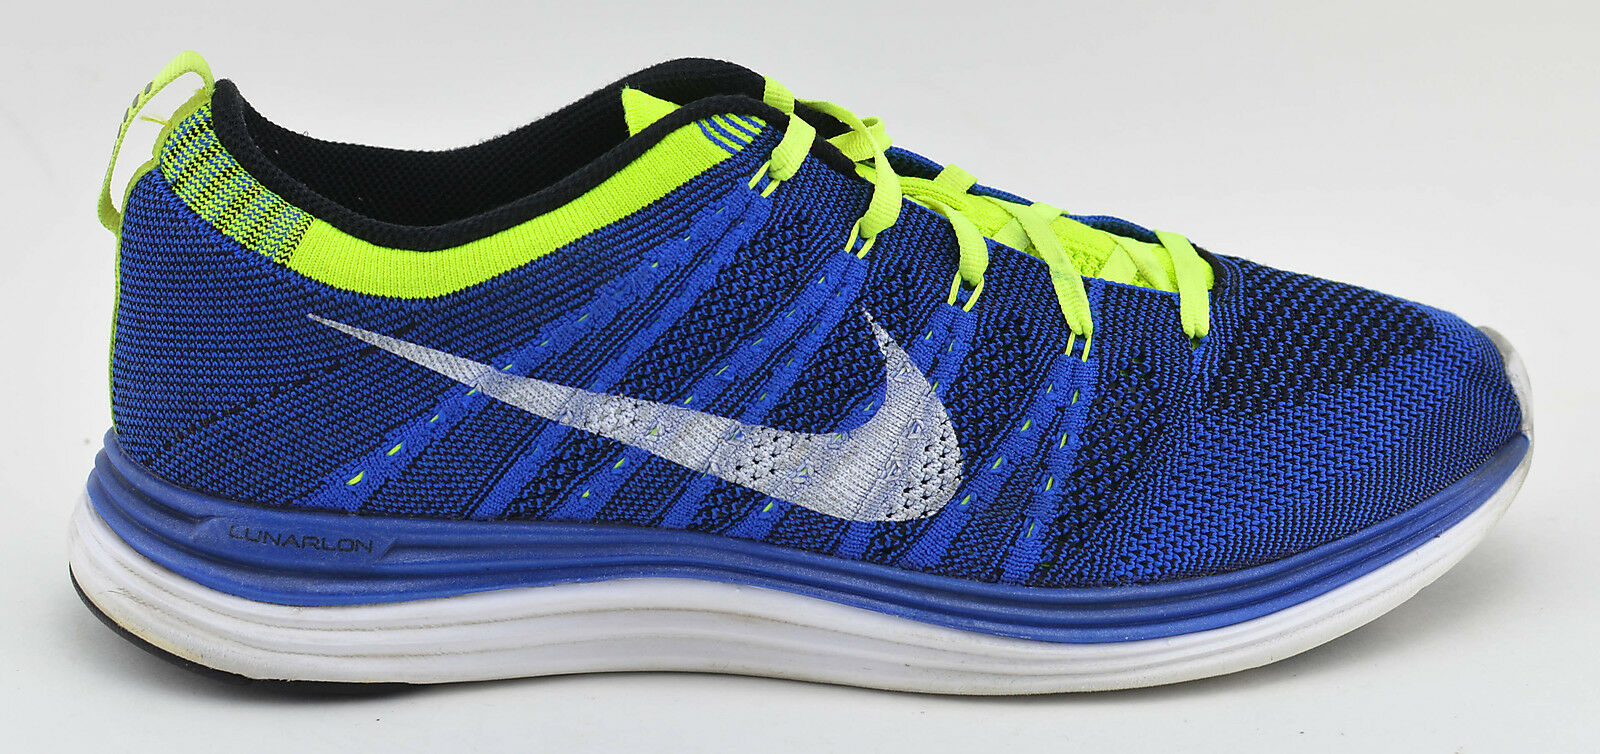 db21e63e9 NIKE LUNAR ONE RUNNING SHOES SIZE 10 blueE YELLOW WHITE 554887 410 FLYKNIT  MENS nqhuvn2523-Athletic Shoes